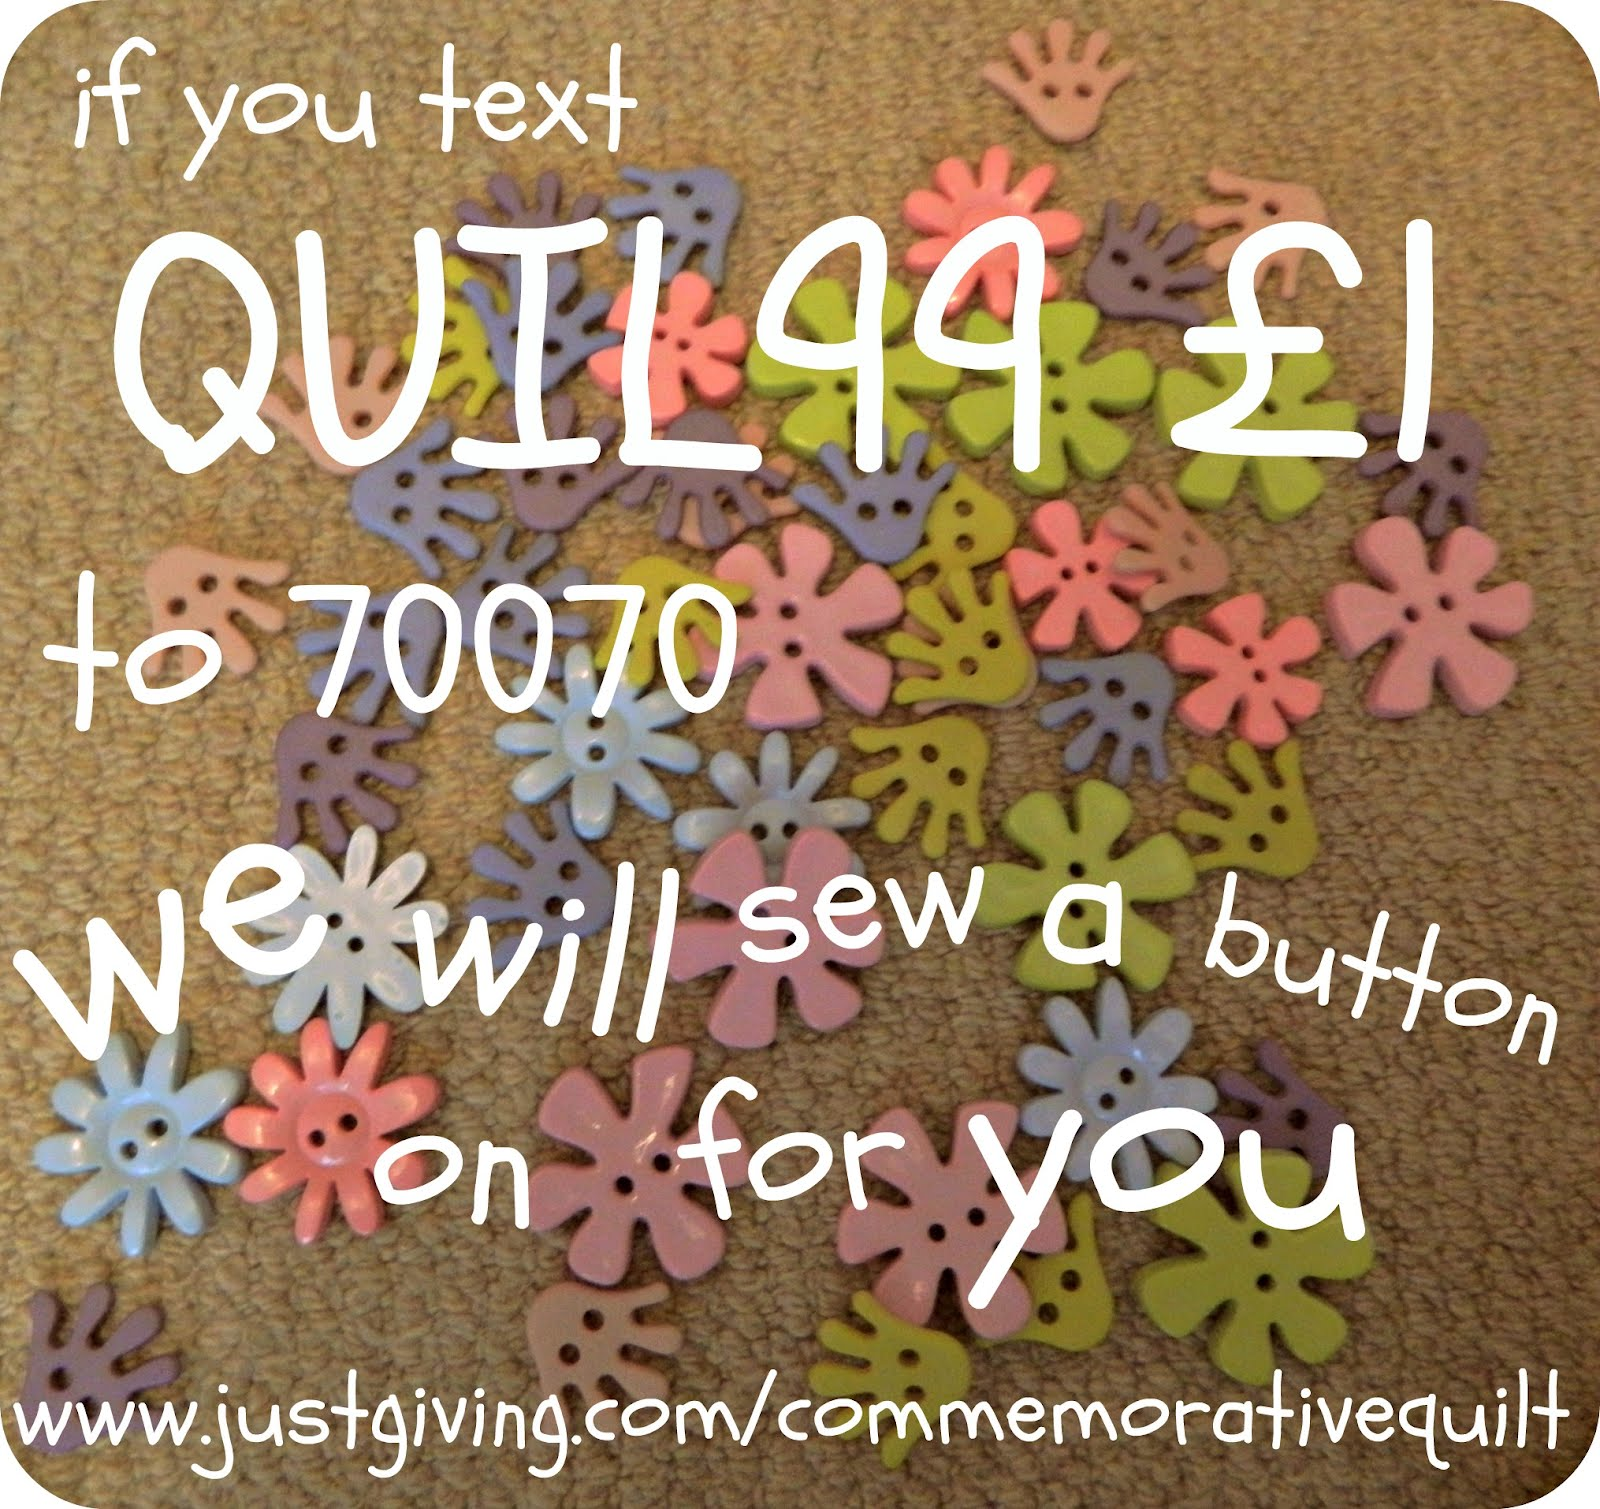 Give us a Helping Hand for  £1 and sponsor a button on the Special Care quilt!